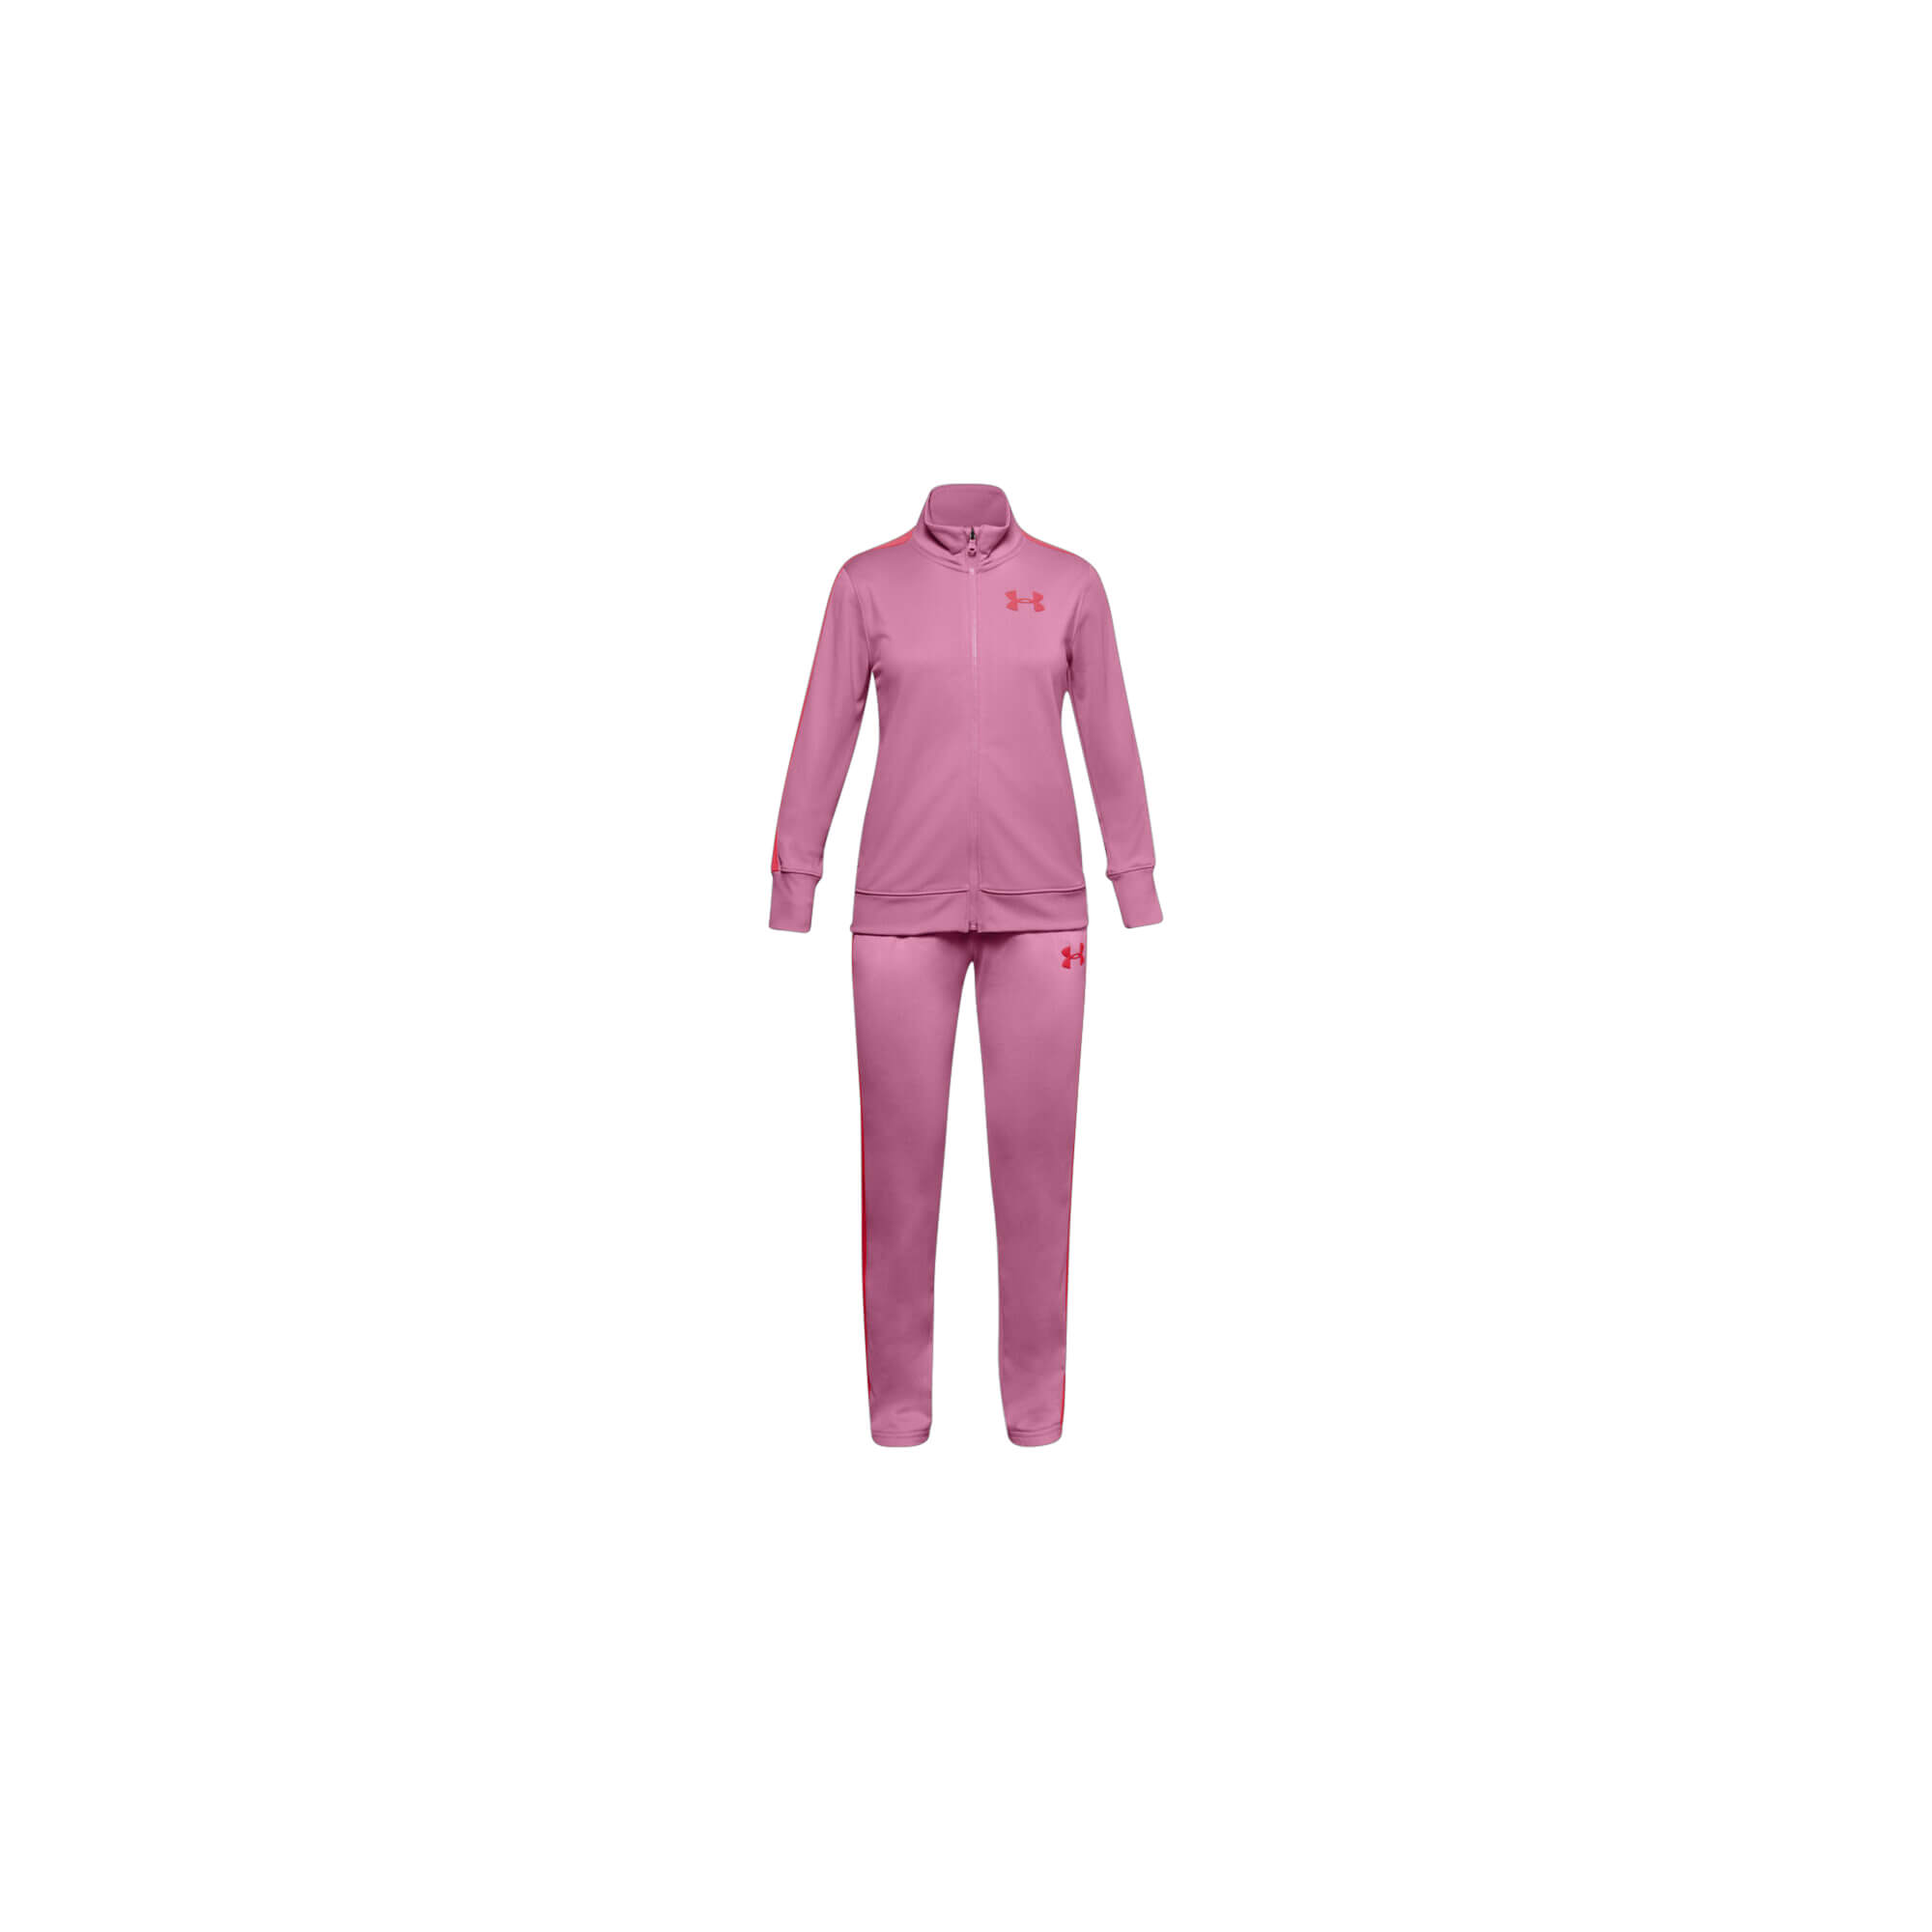 EM Knit Track Suit copii imagine produs